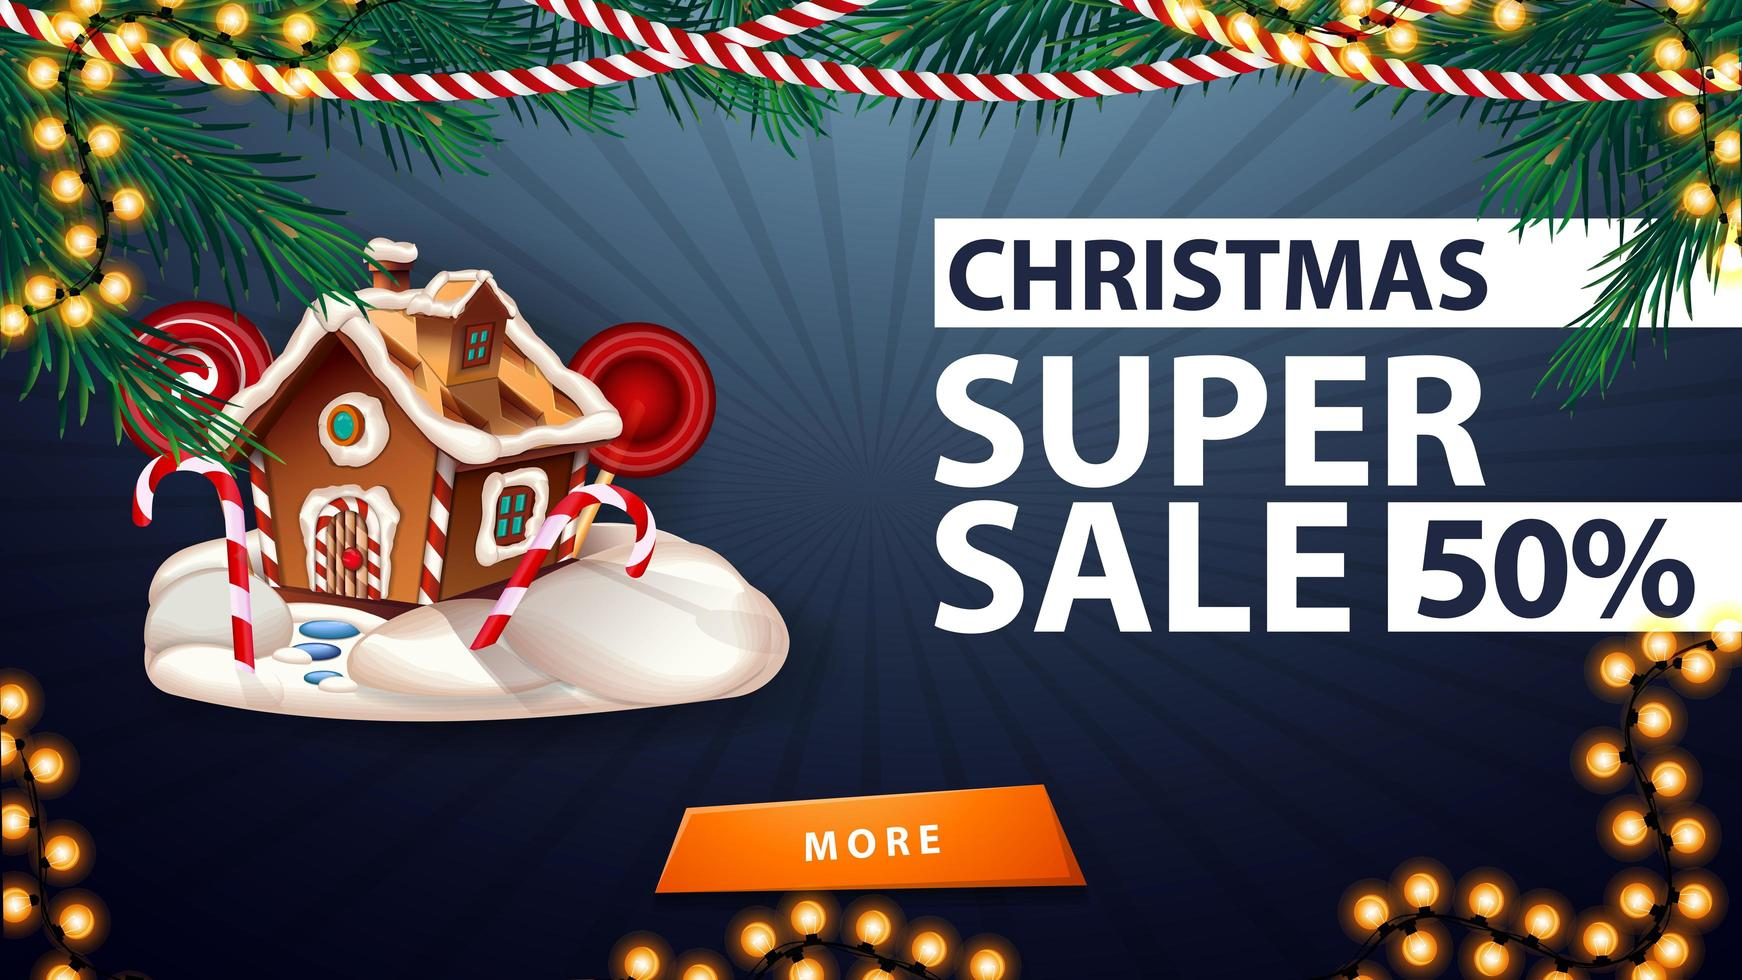 Christmas super sale, up to 50 off, blue discount banner with garlands, button and Christmas gingerbread house vector